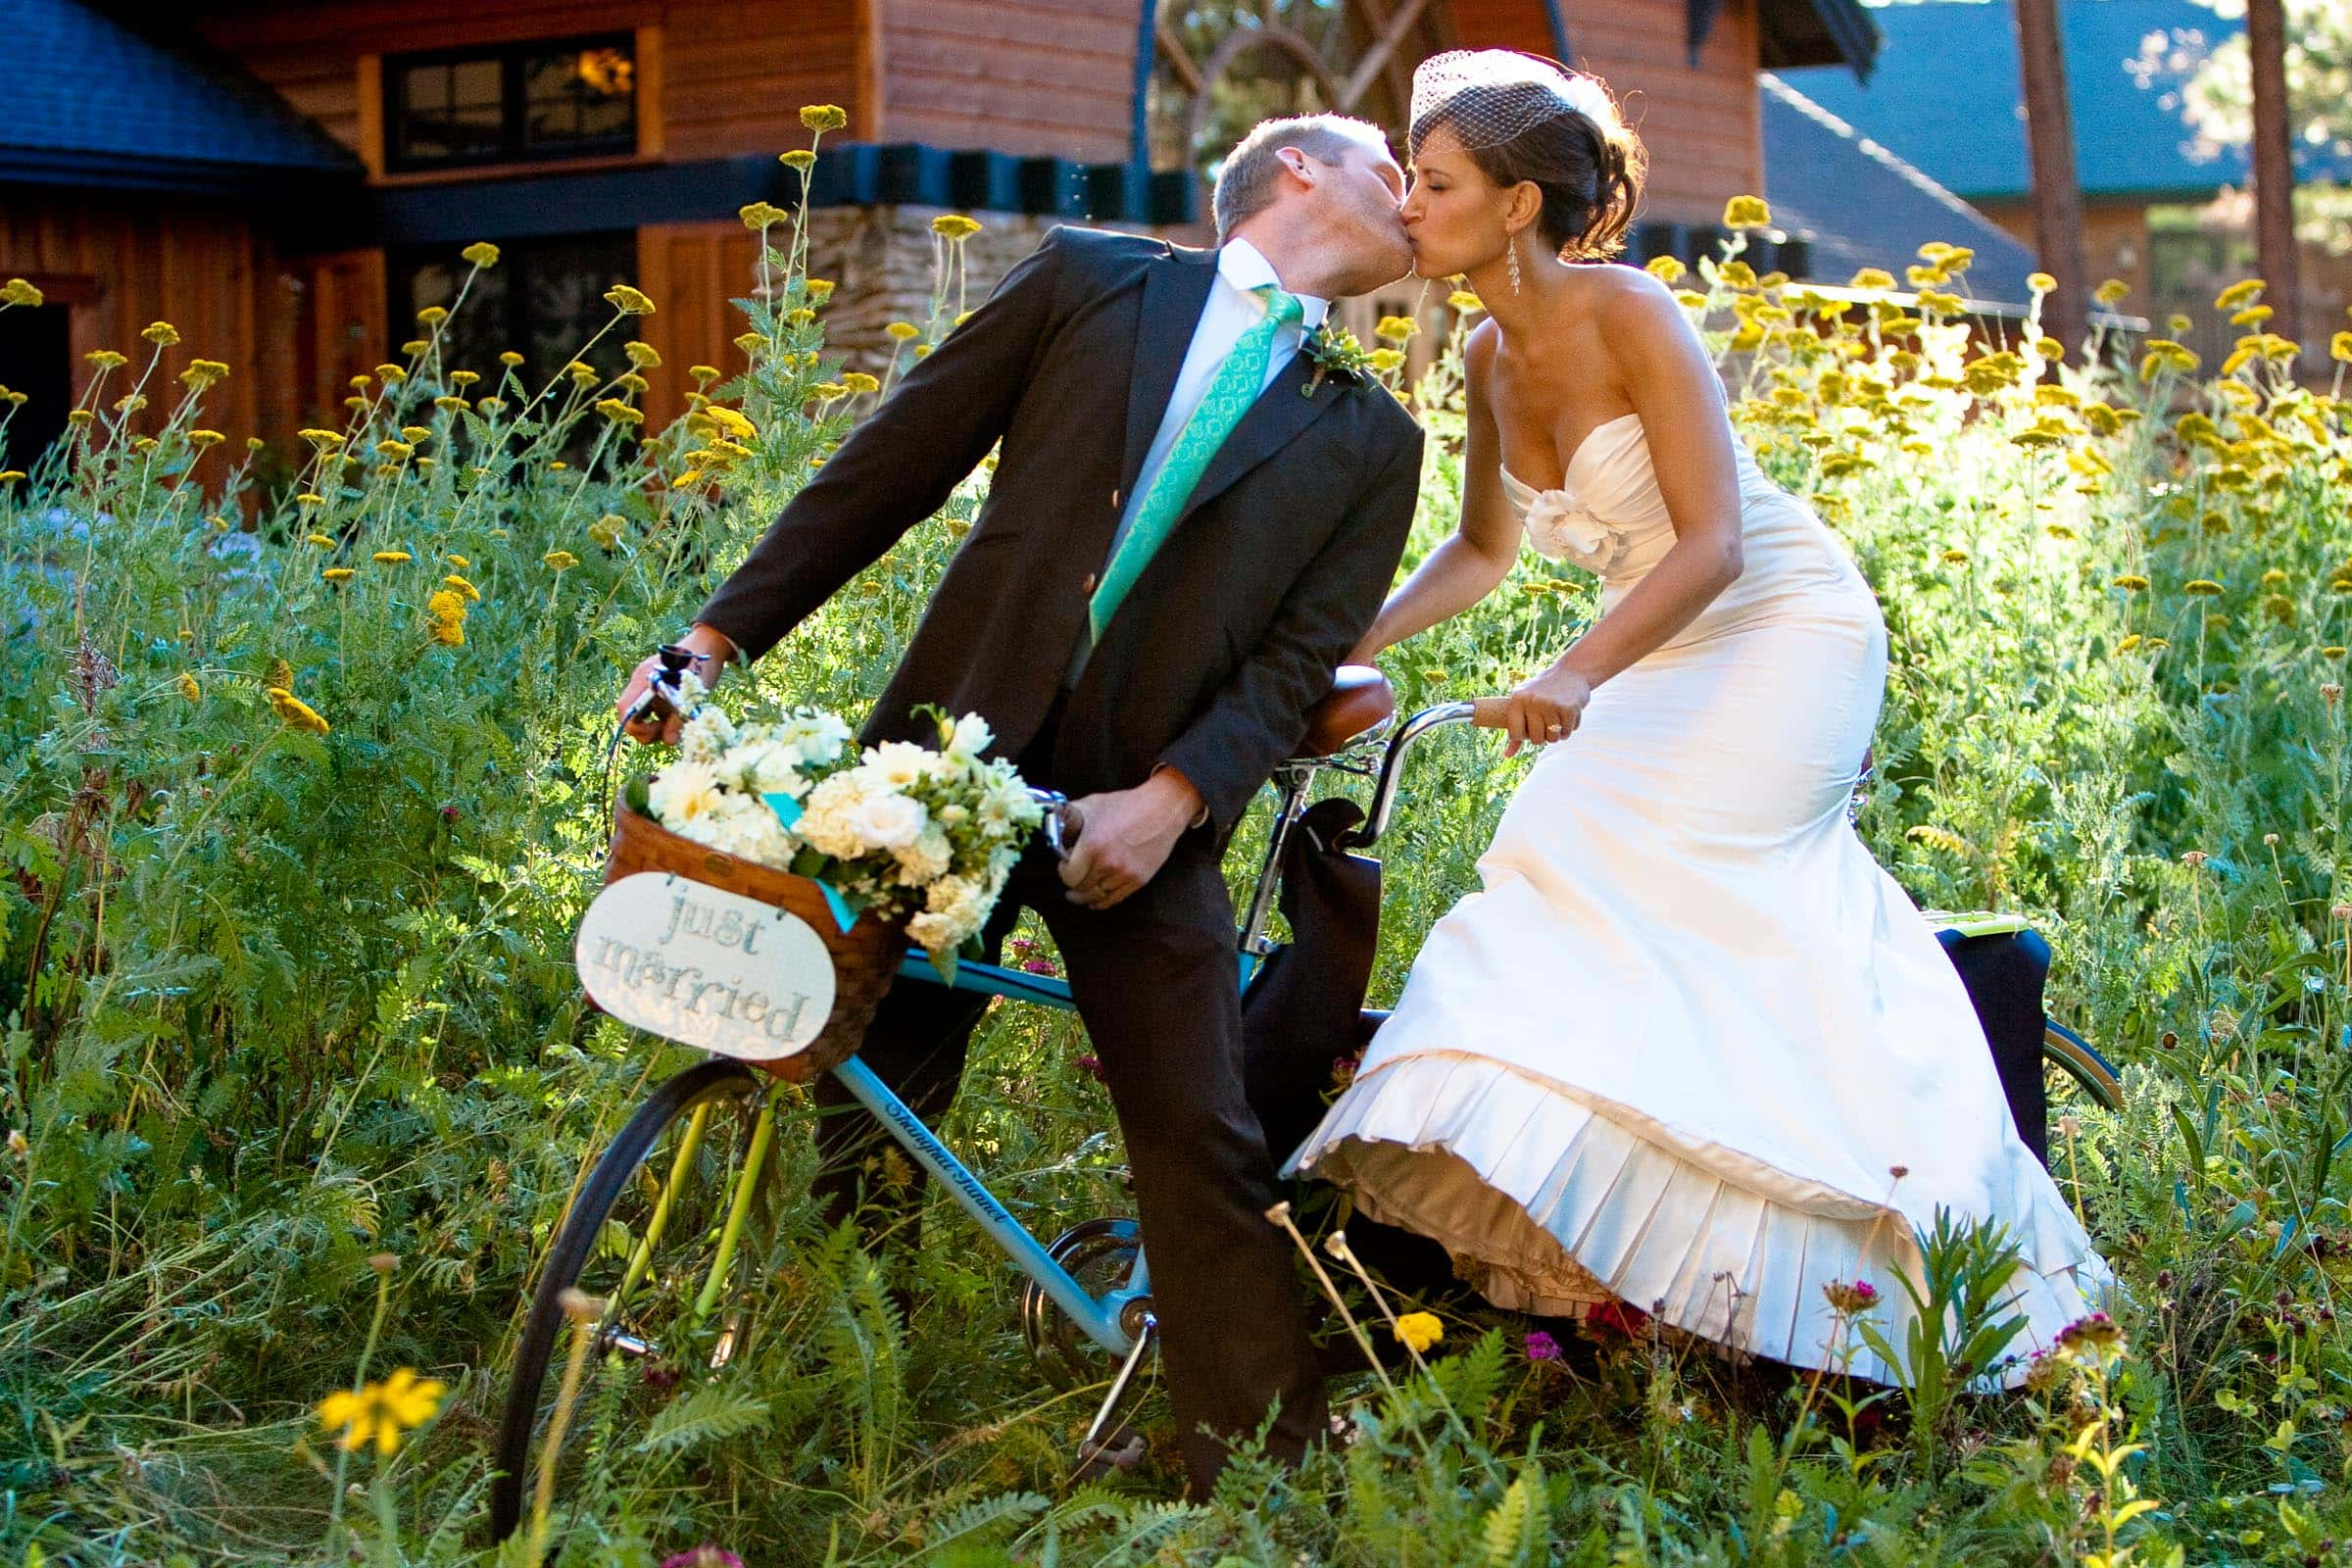 Bride and groom on a tandum bike in a flower field during their Five Pine Lodge wedding in Sisters Oregon near Bend